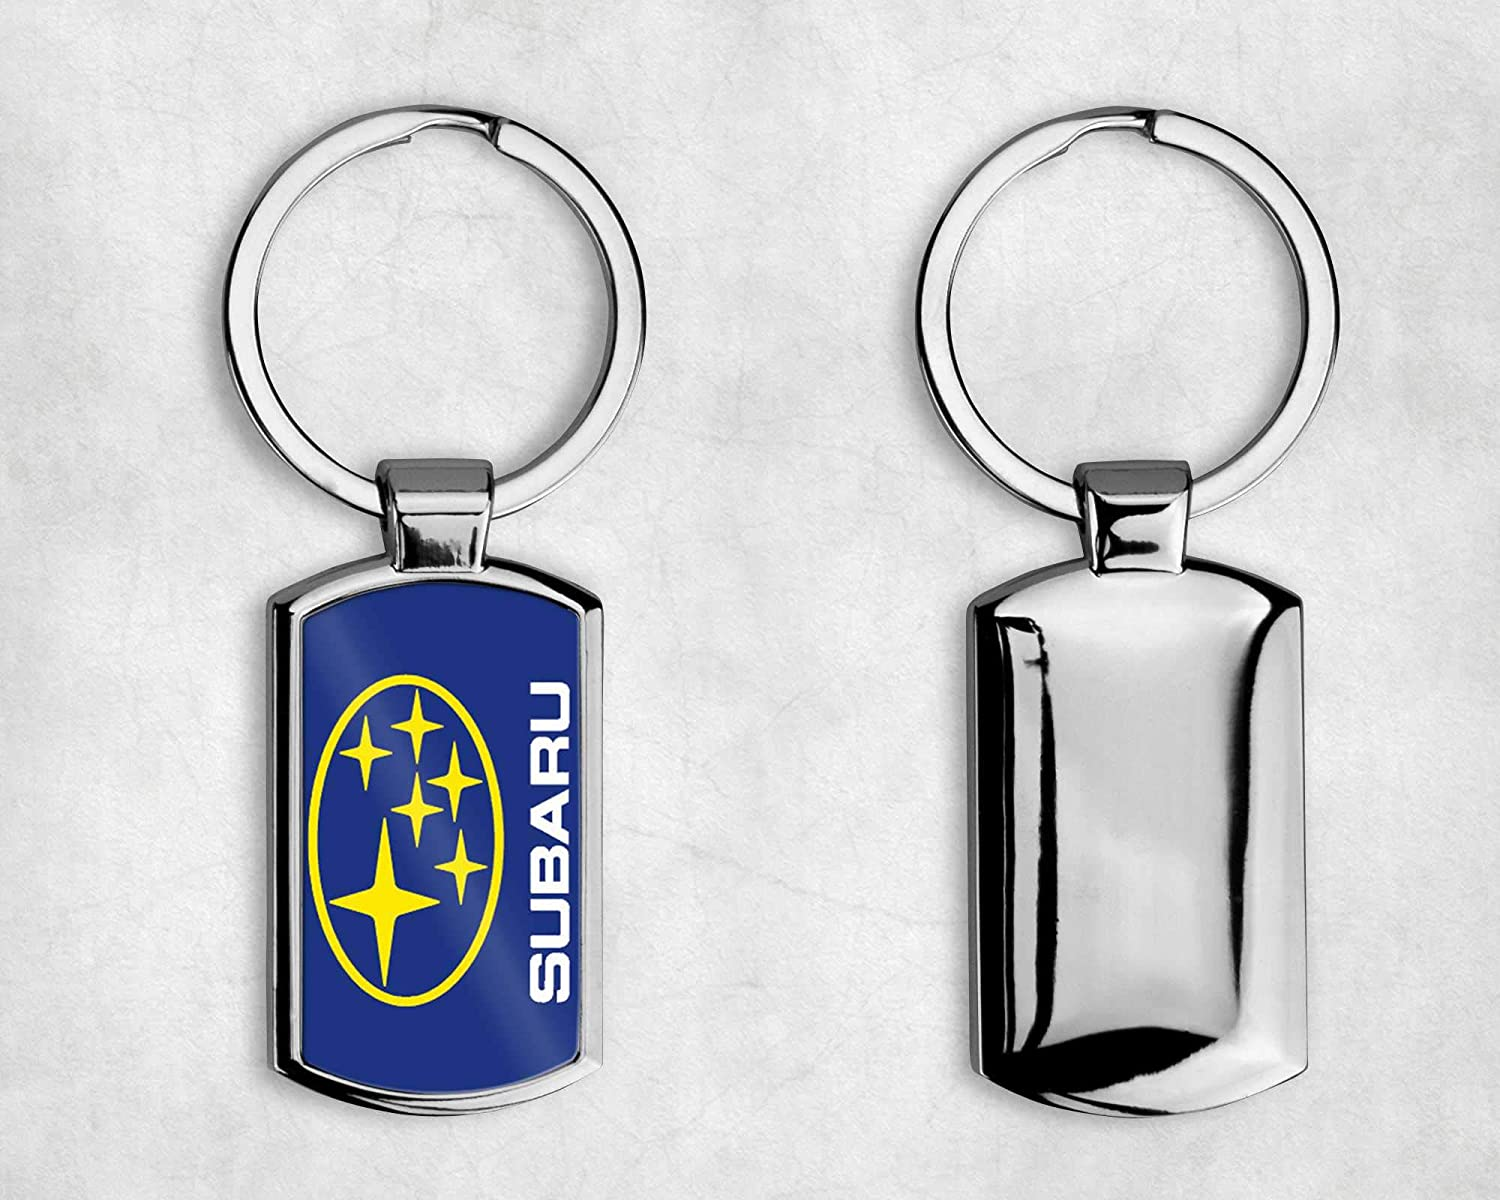 T20 DESIGNS SUBARU CAR LOGO METAL KEYRING SUBARU WRX Complete with Gift Box Choice of Design -A002